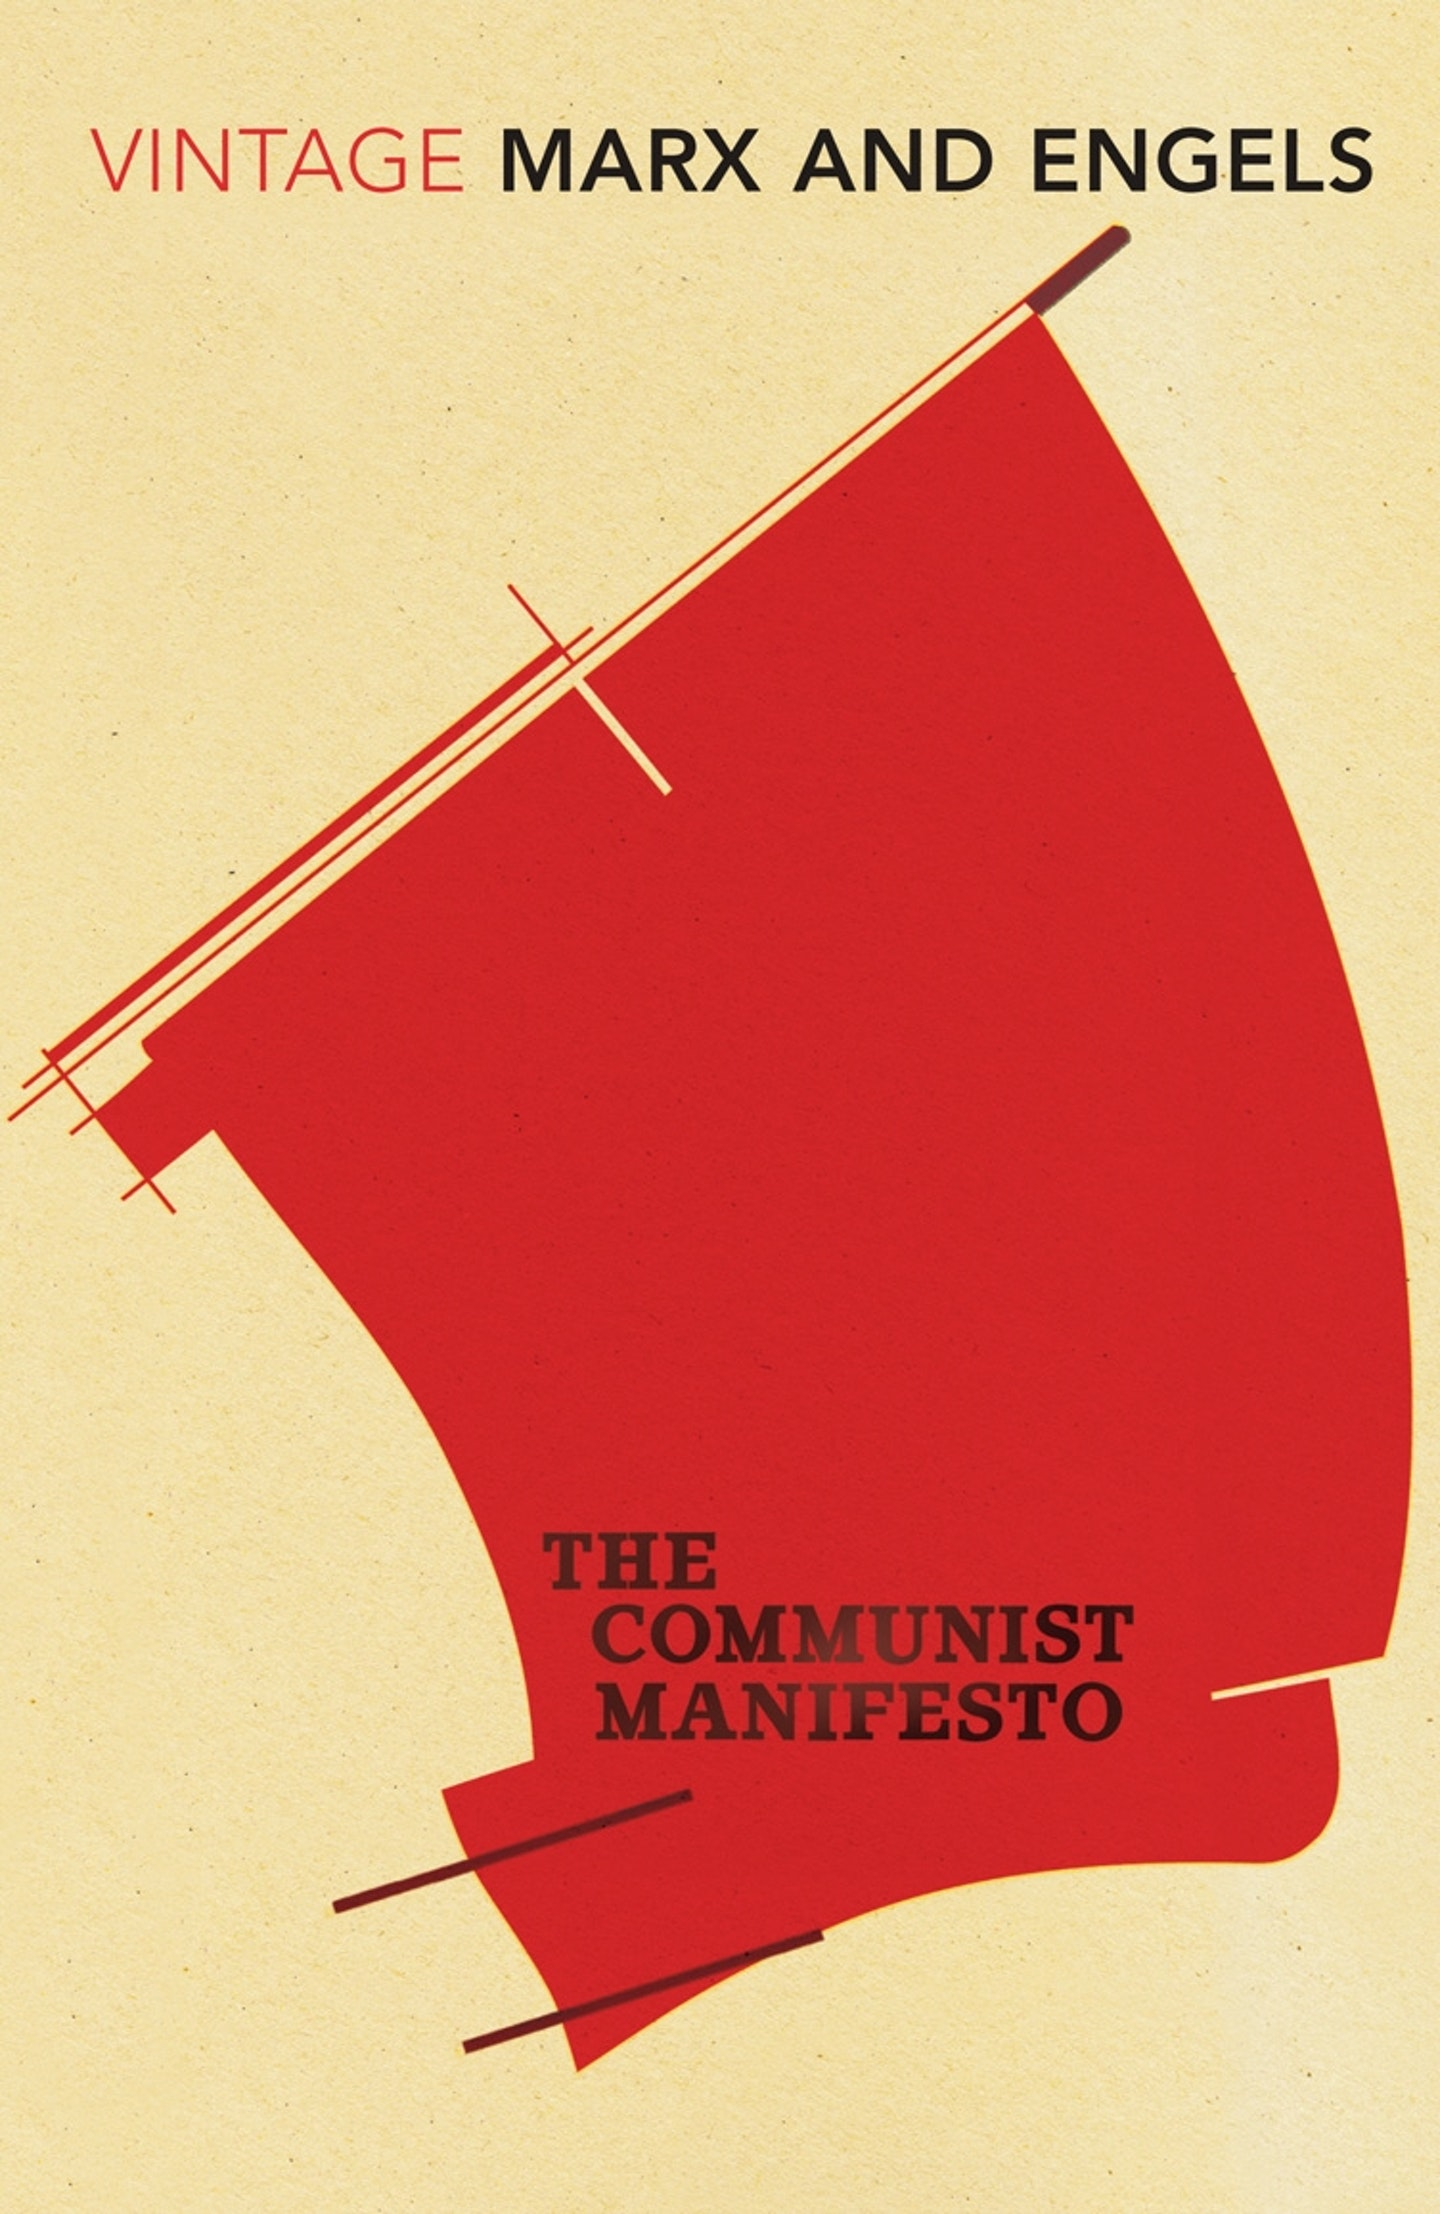 marxs manifesto essay Read marx's manifesto free essay and over 88,000 other research documents marx's manifesto marx's theoretical work is the understanding of the nature of human.